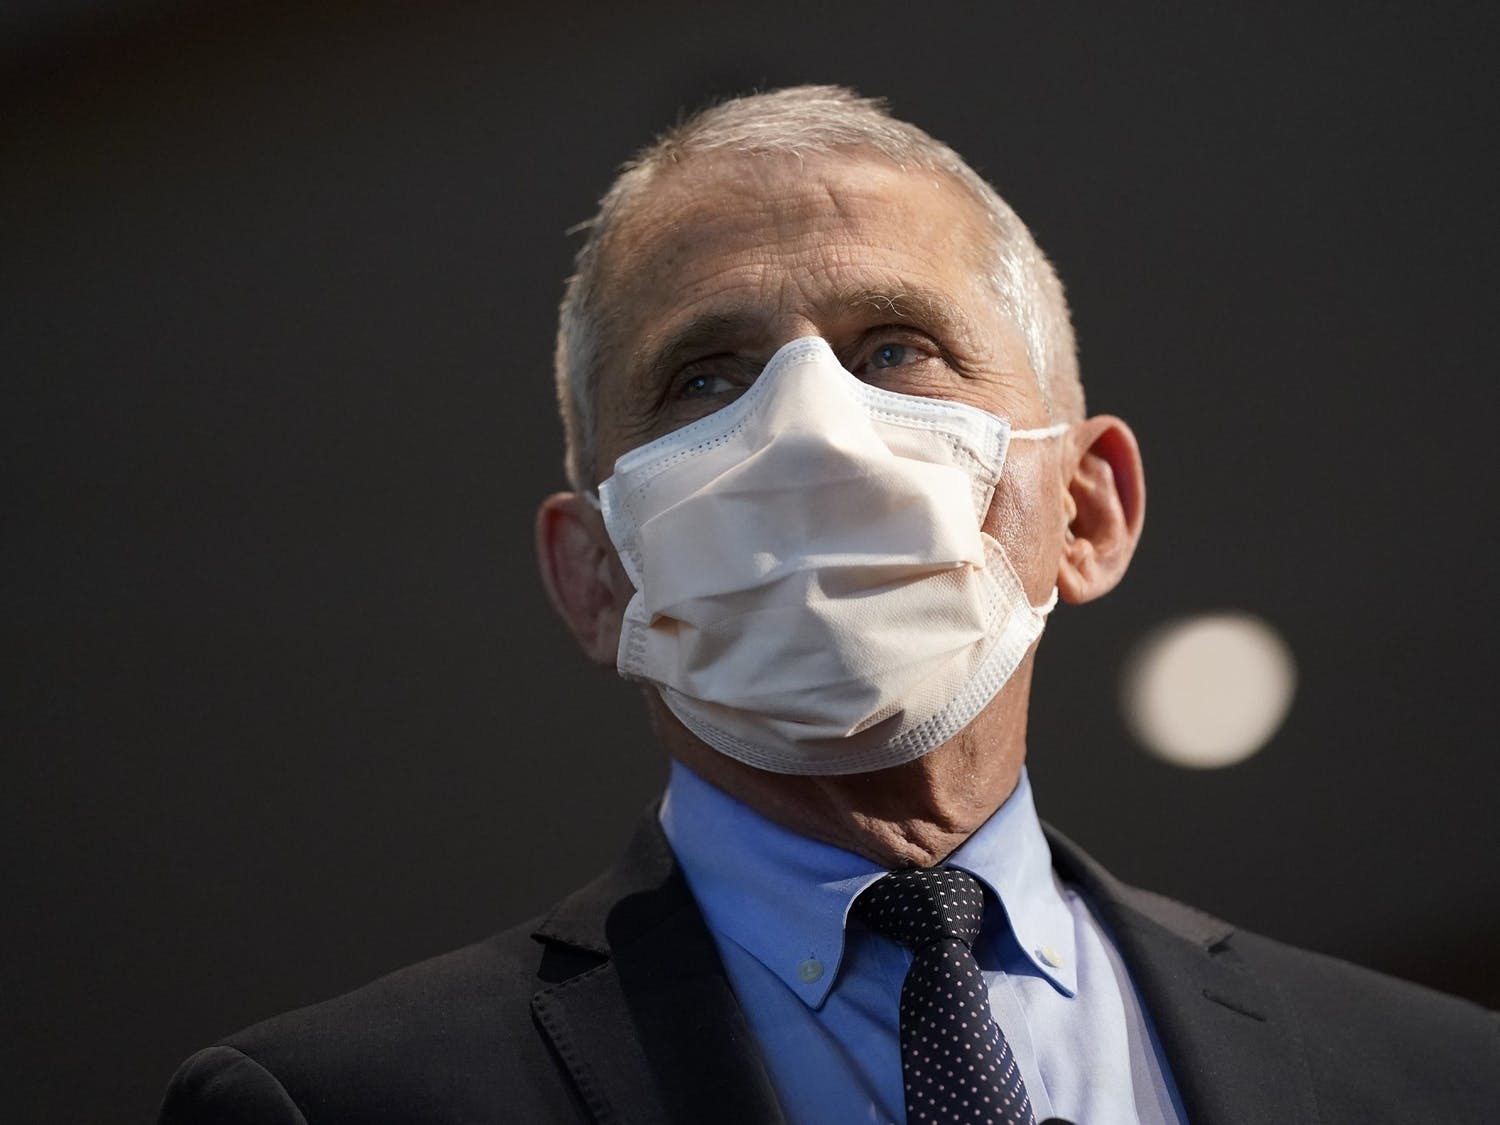 Dr. Anthony Fauci, director of the National Institute of Allergy and Infectious Diseases, at the National Institutes of Health on Dec. 22, 2020, in Bethesda, Md. Photo courtesy of Patrick Semansky/Getty Images